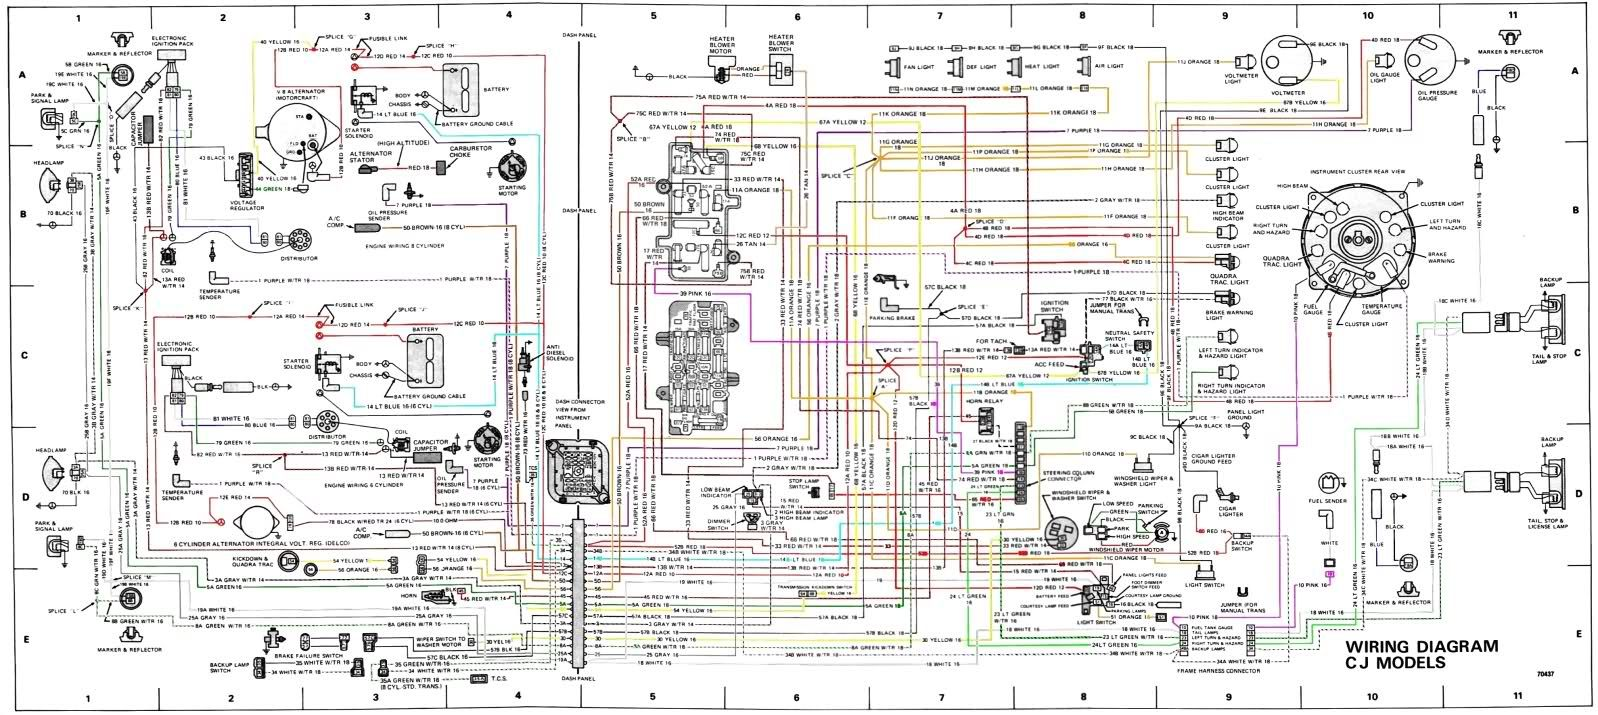 Image result for jeep cj7 wiring harness diagram | Jeep cj7, Cj7, DiagramPinterest